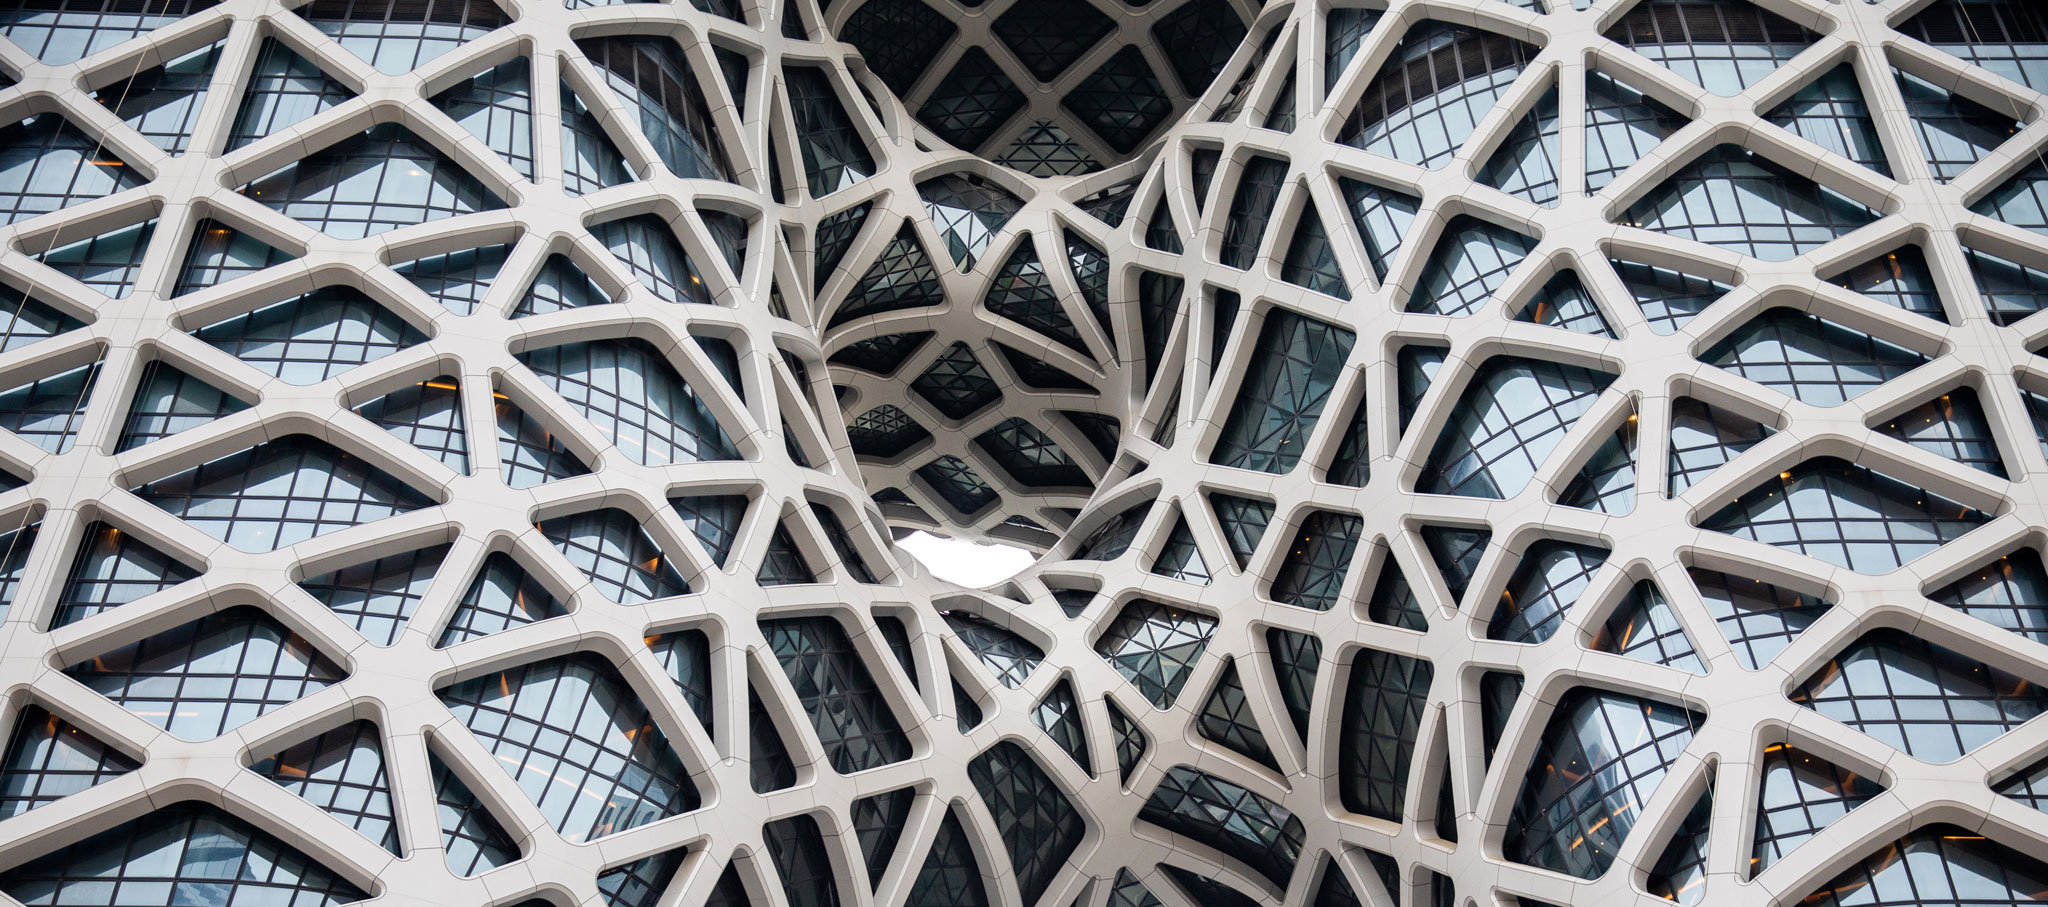 Exoskeleton. Morpheus, a new flagship hotel for the City of Dreams resort in Macau by Zaha Hadid Architects. Photograph © Ivan Dupont